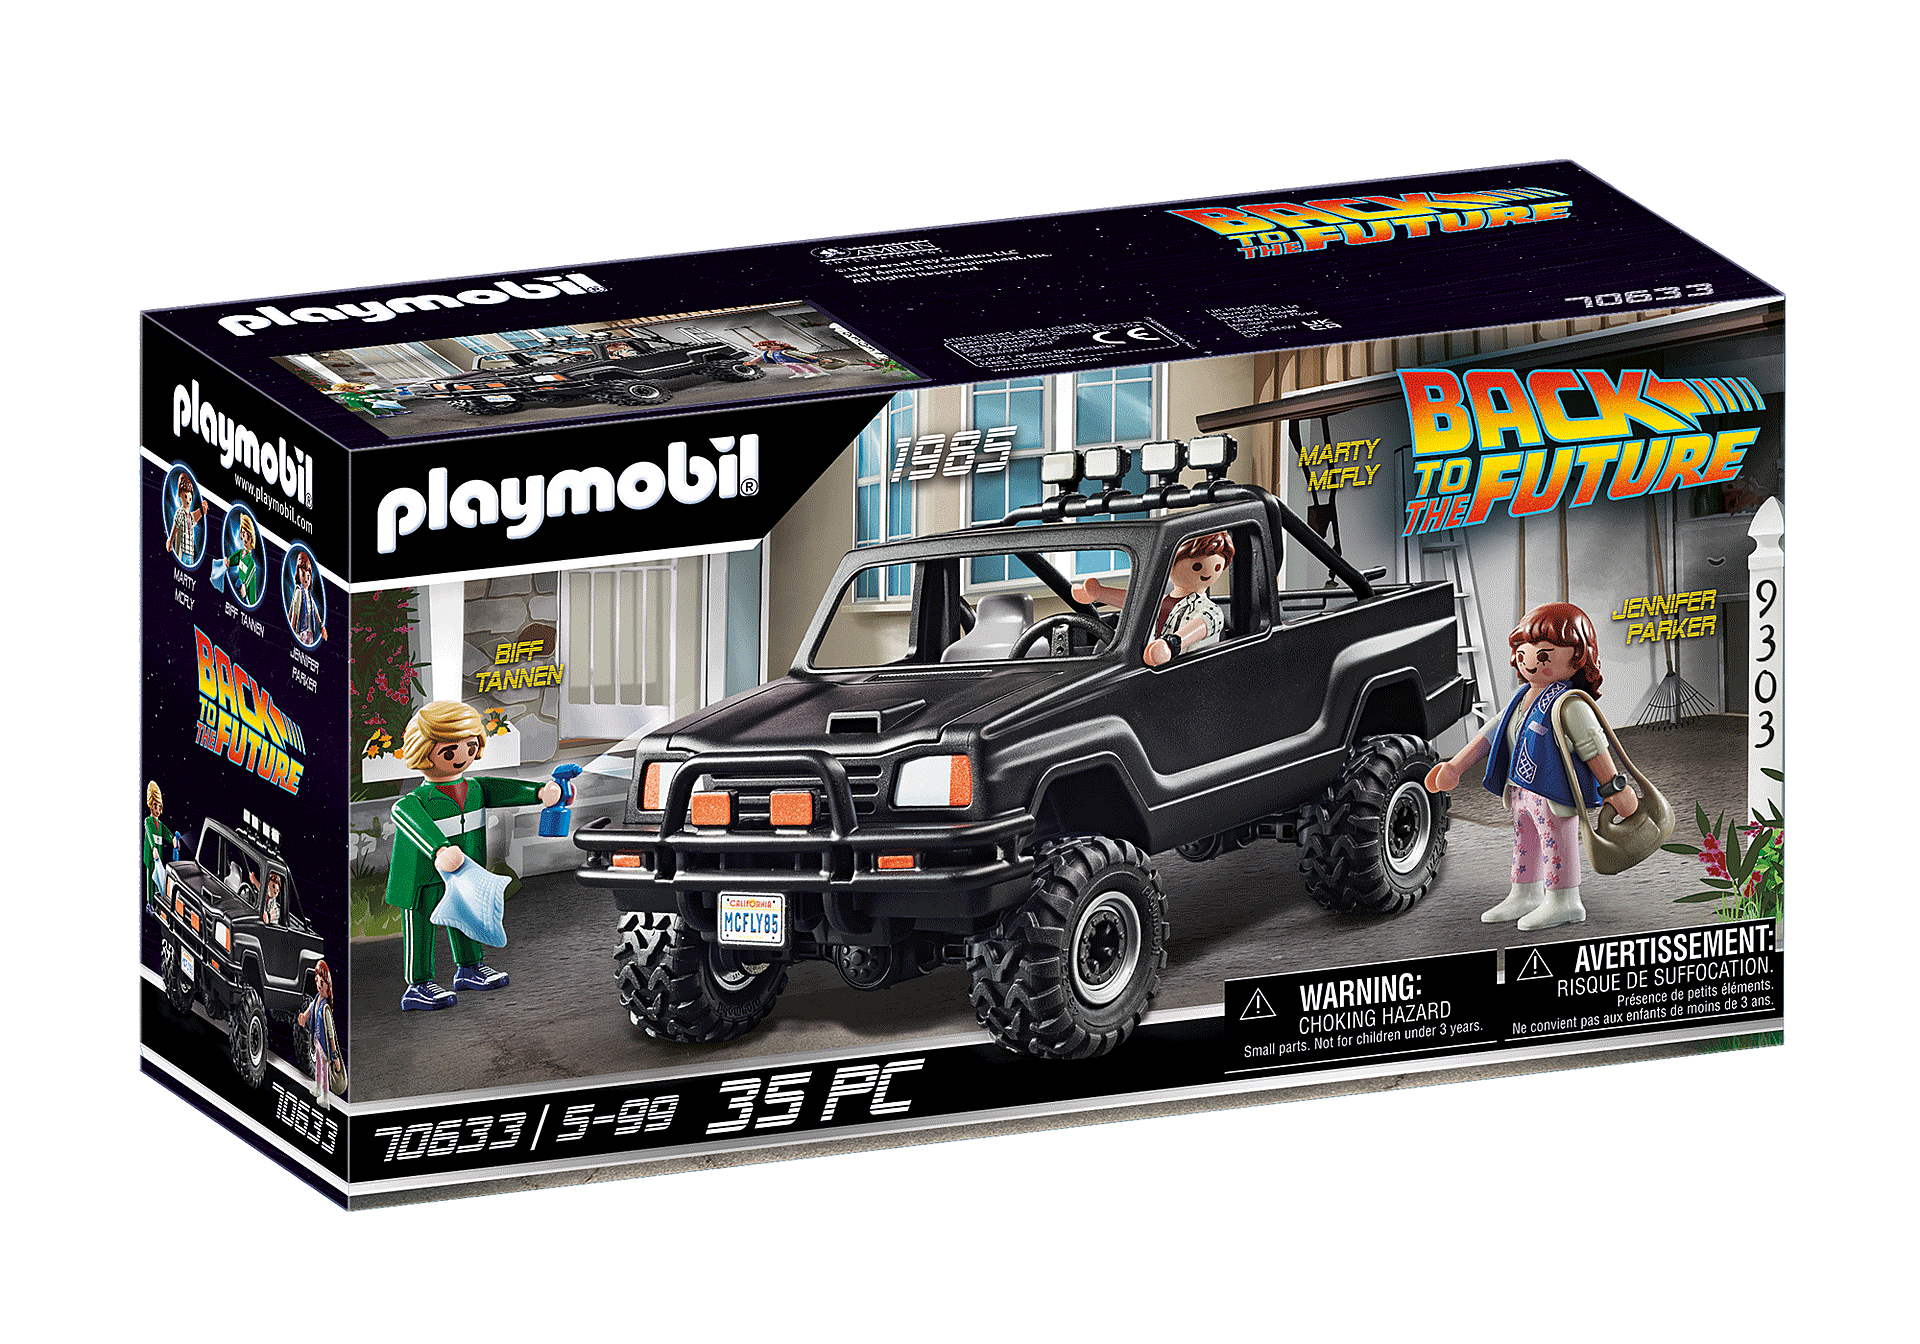 70633 Pick-up di Marty McFly zoom image2